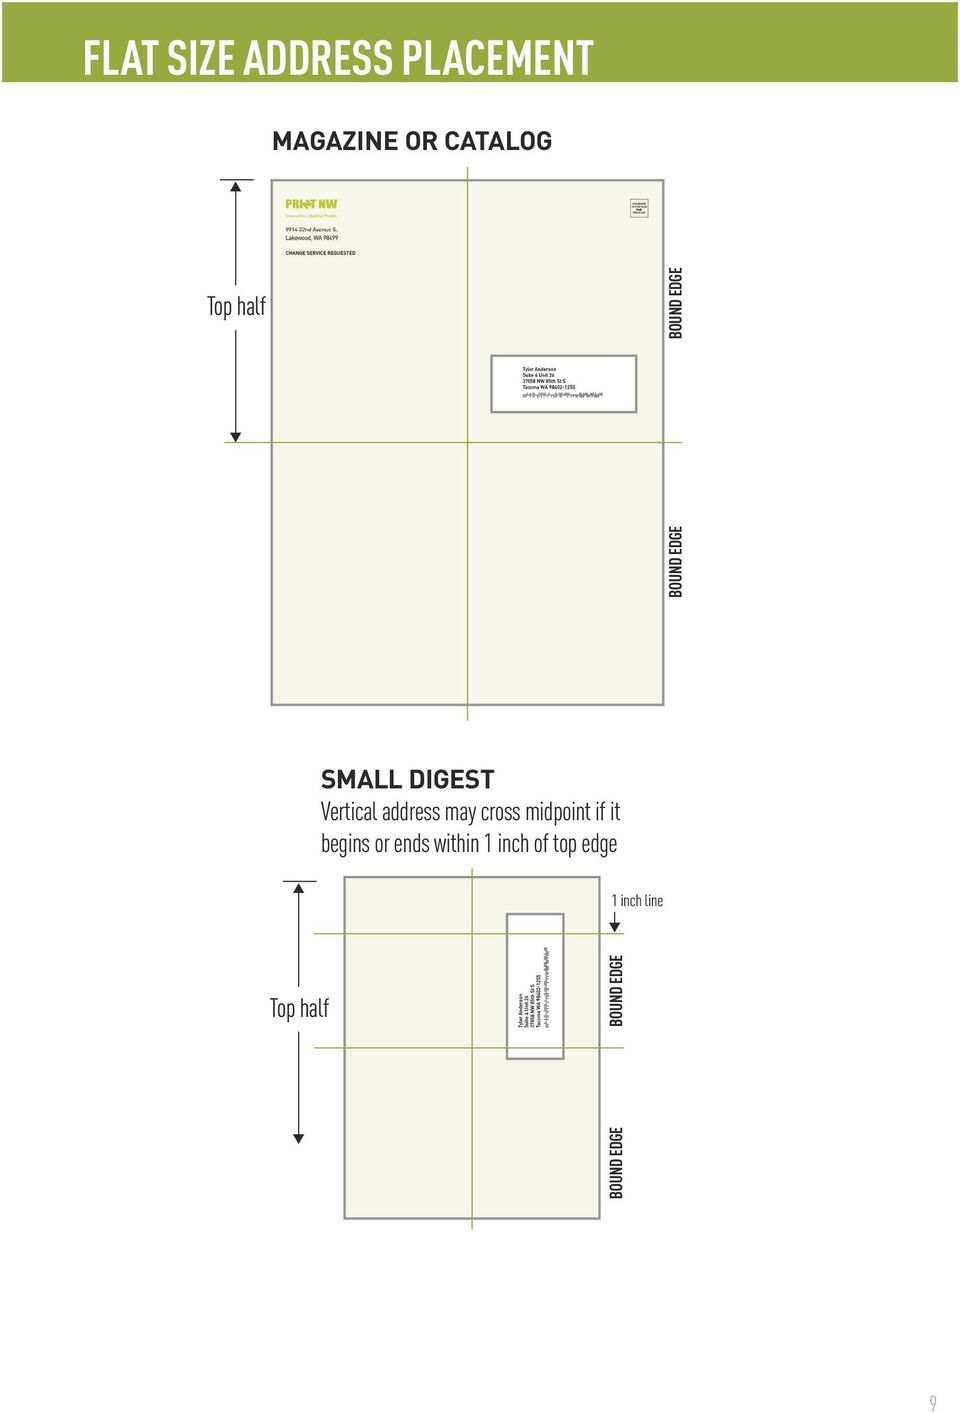 inch of top edge Top half SMALL DIGEST 1 inch line Vertical address may